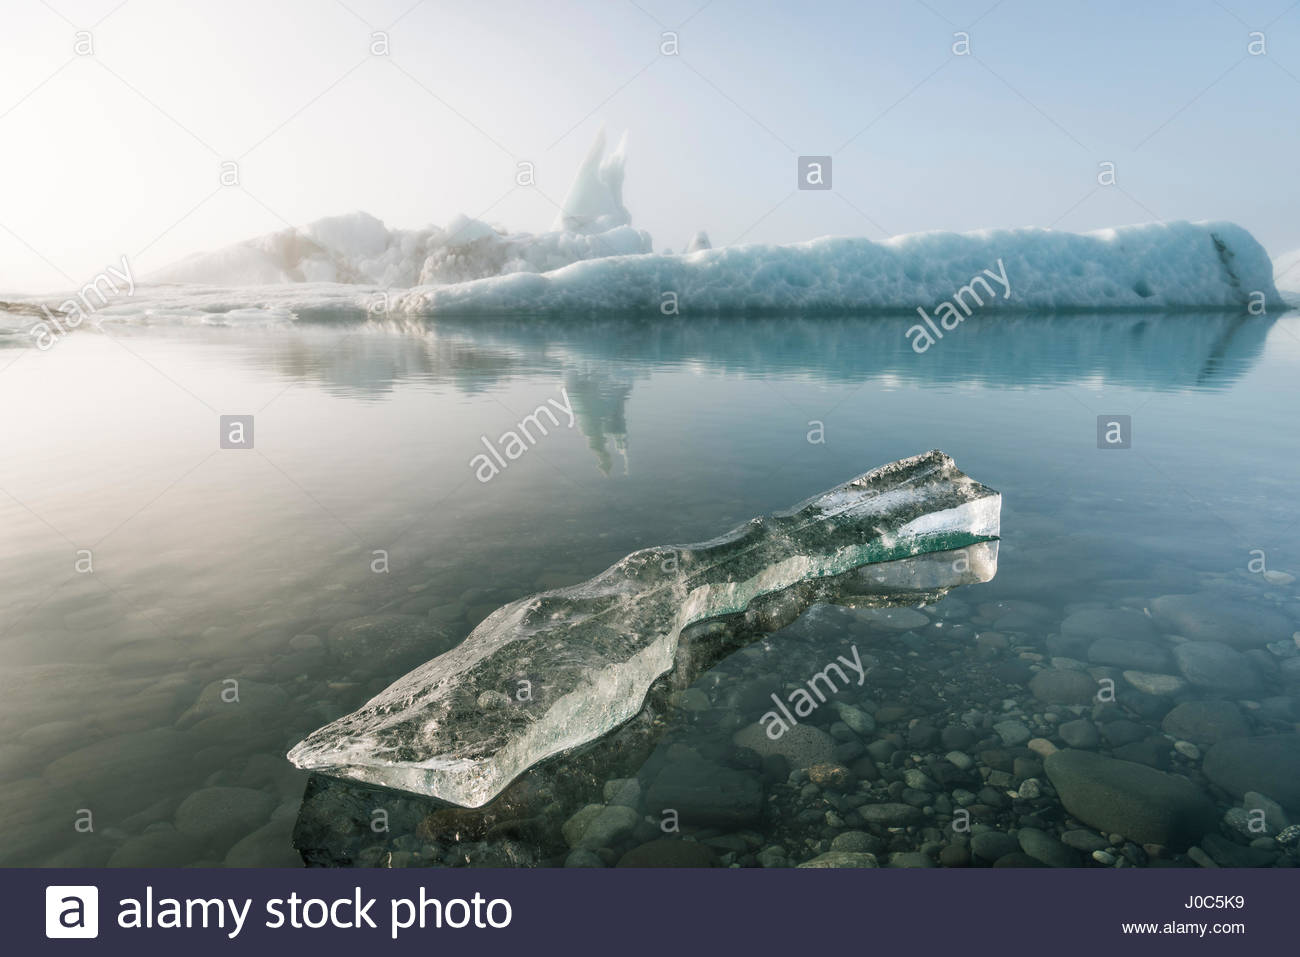 Misty view of ice bergs on glacial lagoon, Jokulsarlon, Iceland - Stock Image